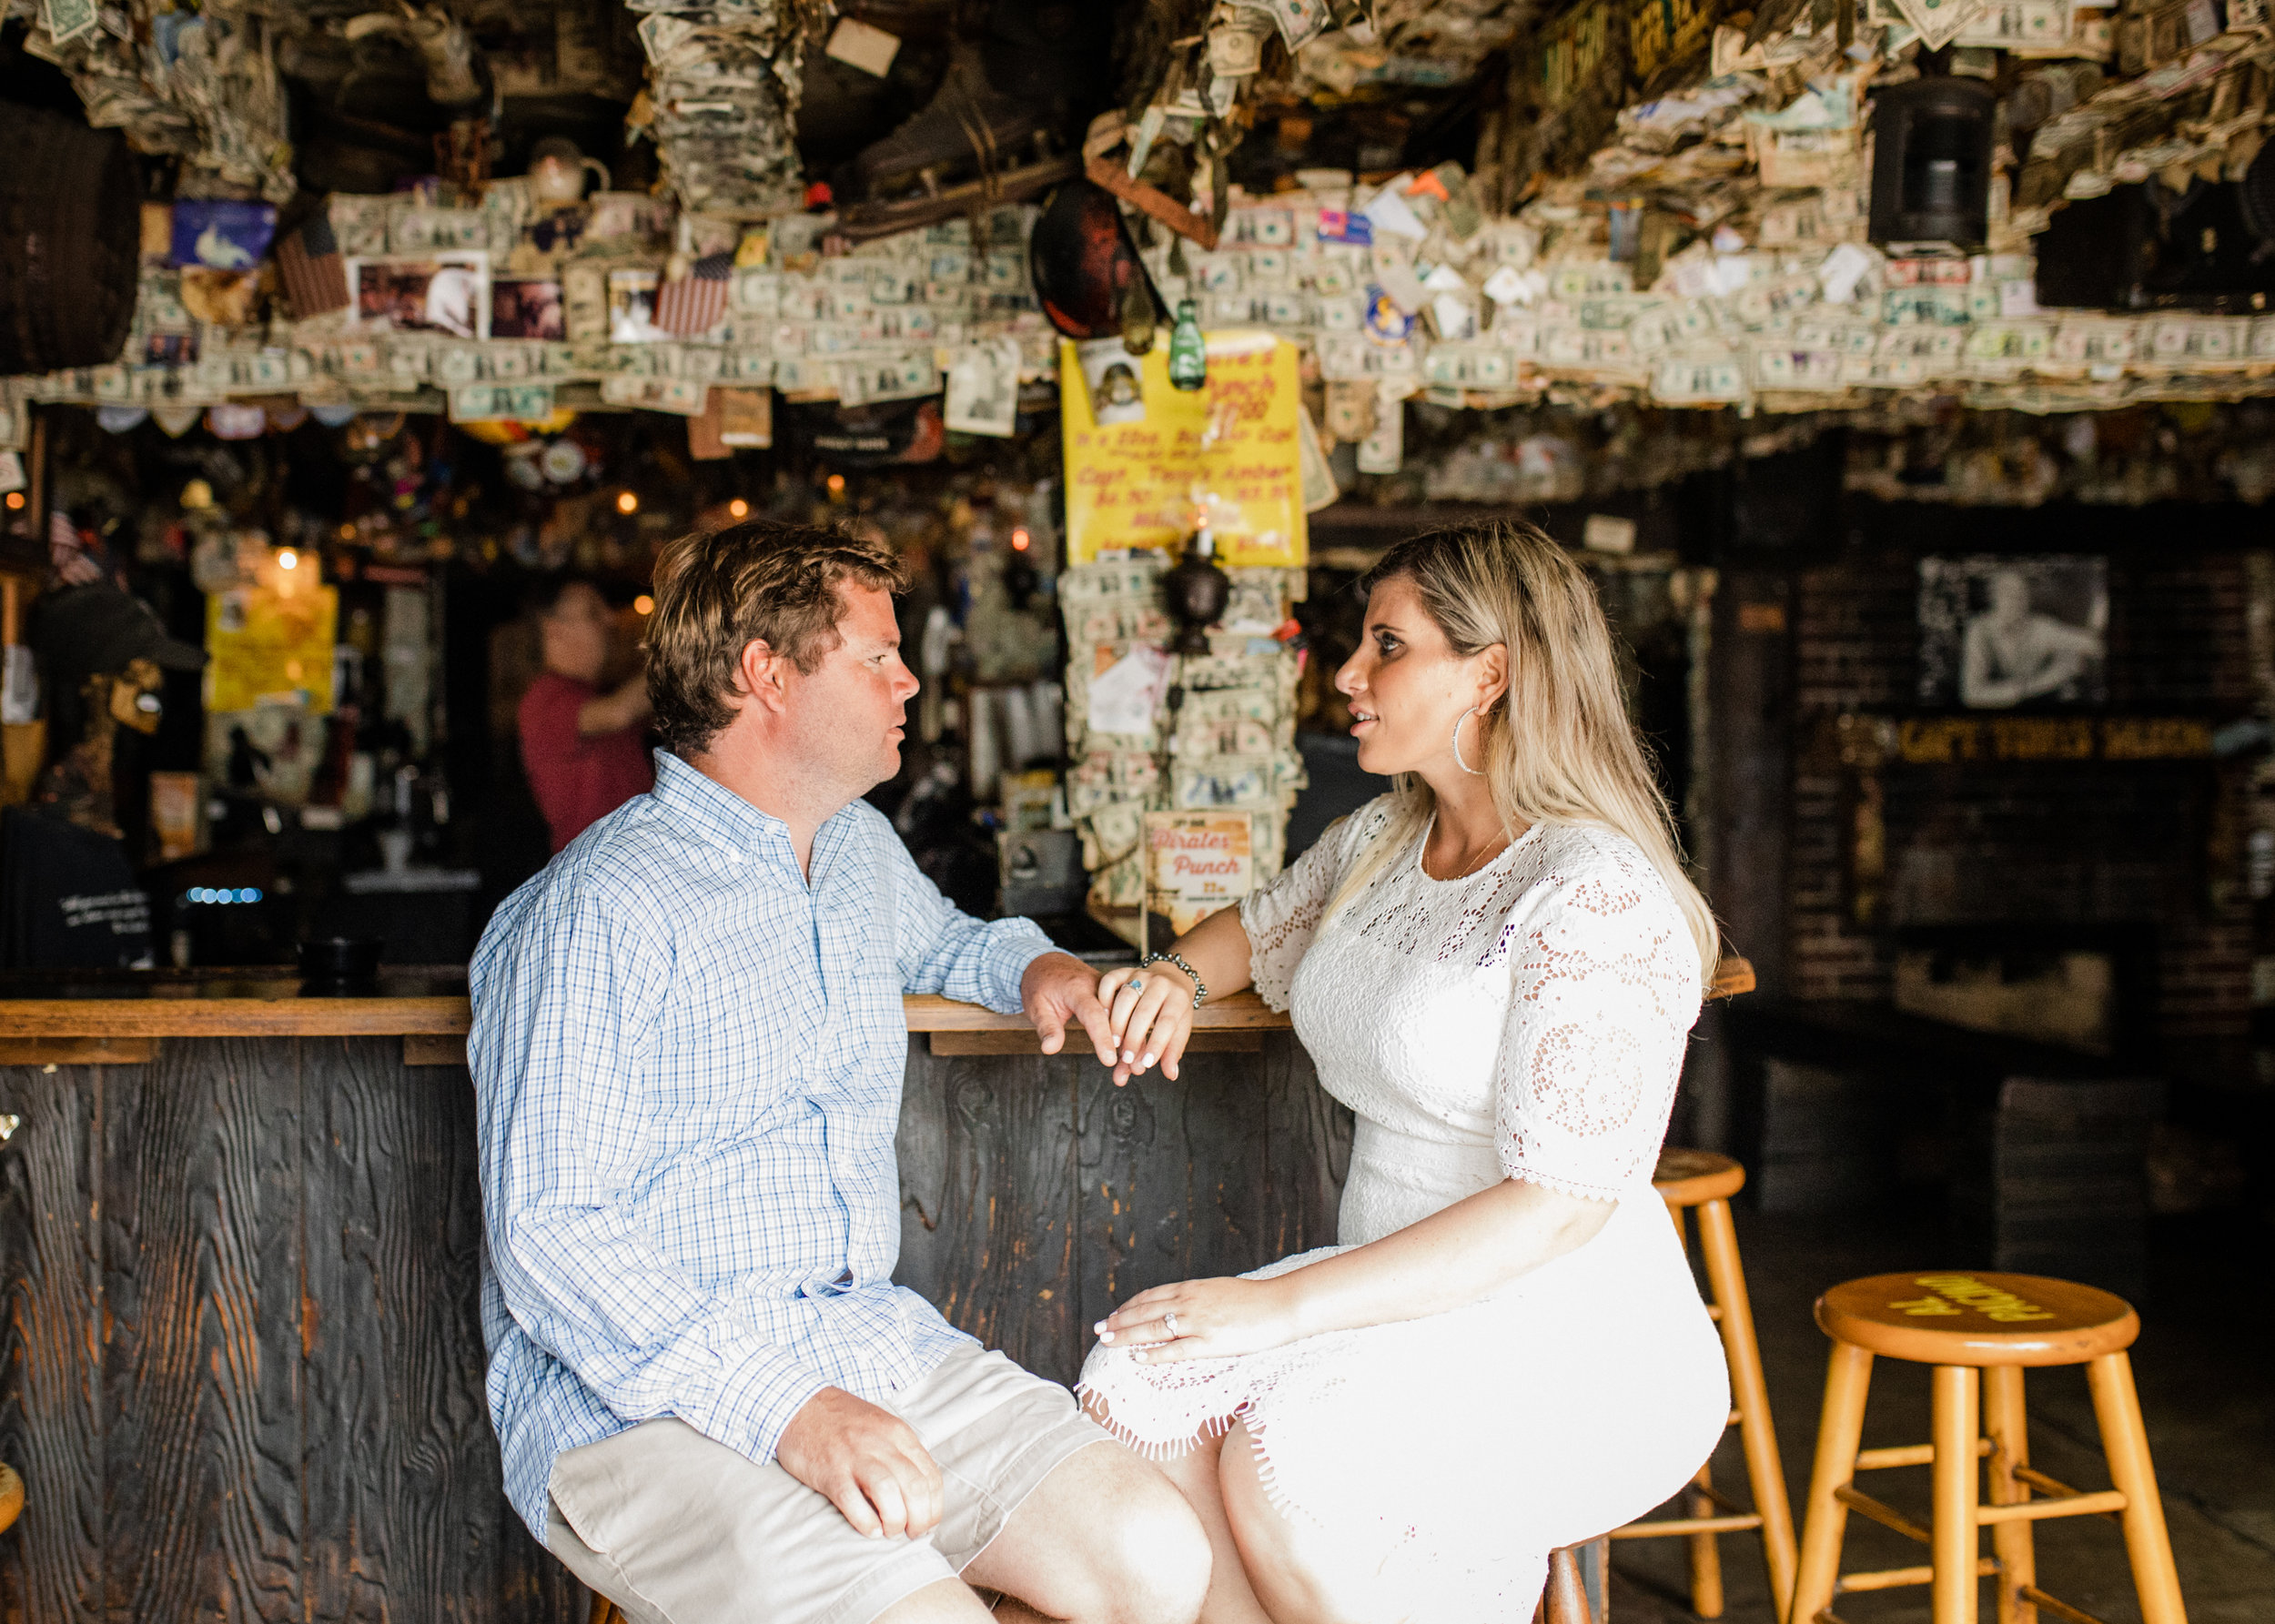 lena perkins, key west, key west photography, key west engagement, key west wedding, key west vacation, destination wedding, family photography -156.jpg